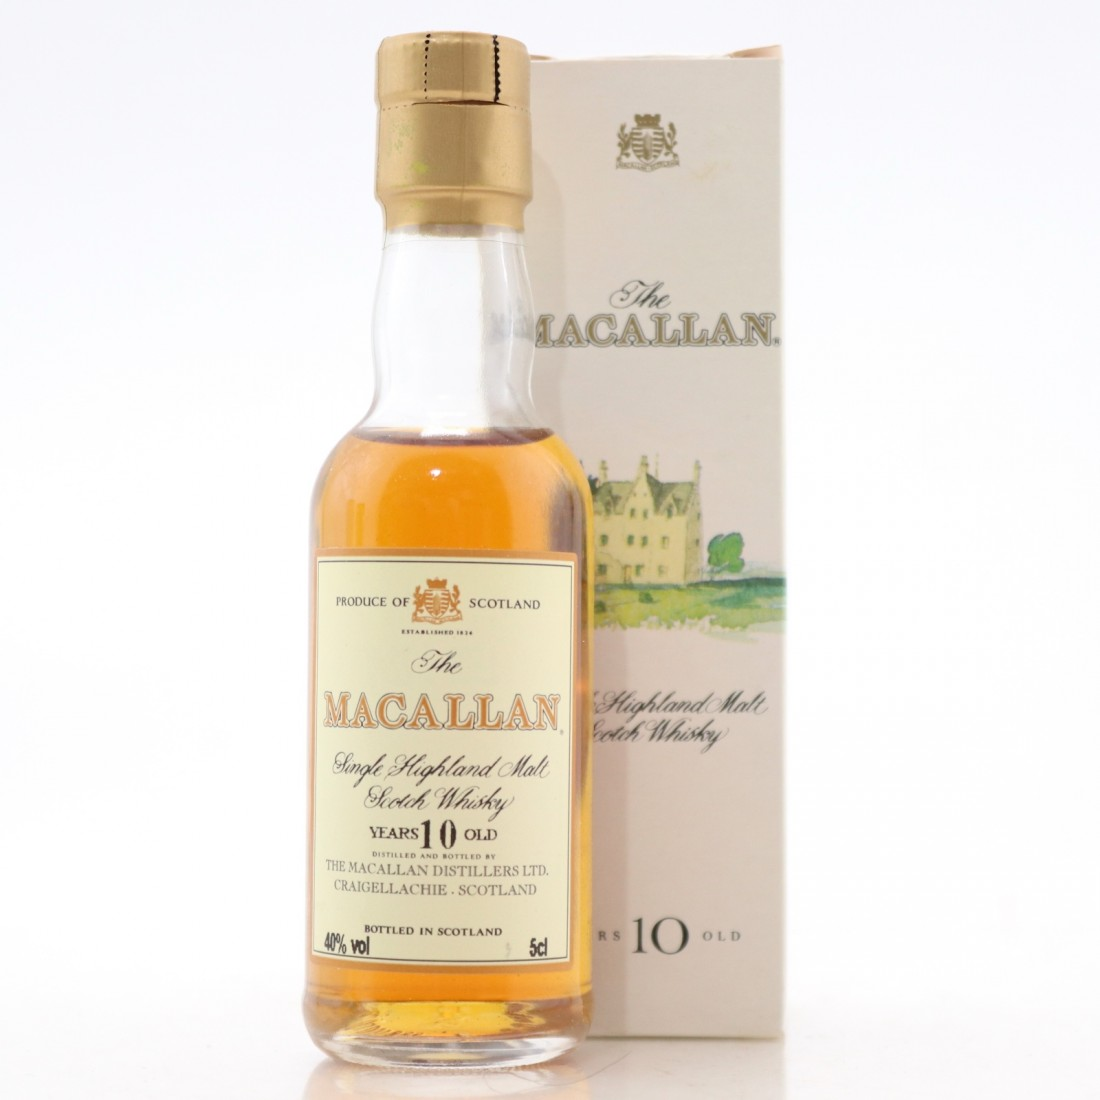 Macallan 10 Year Old Miniature 5cl 1990s